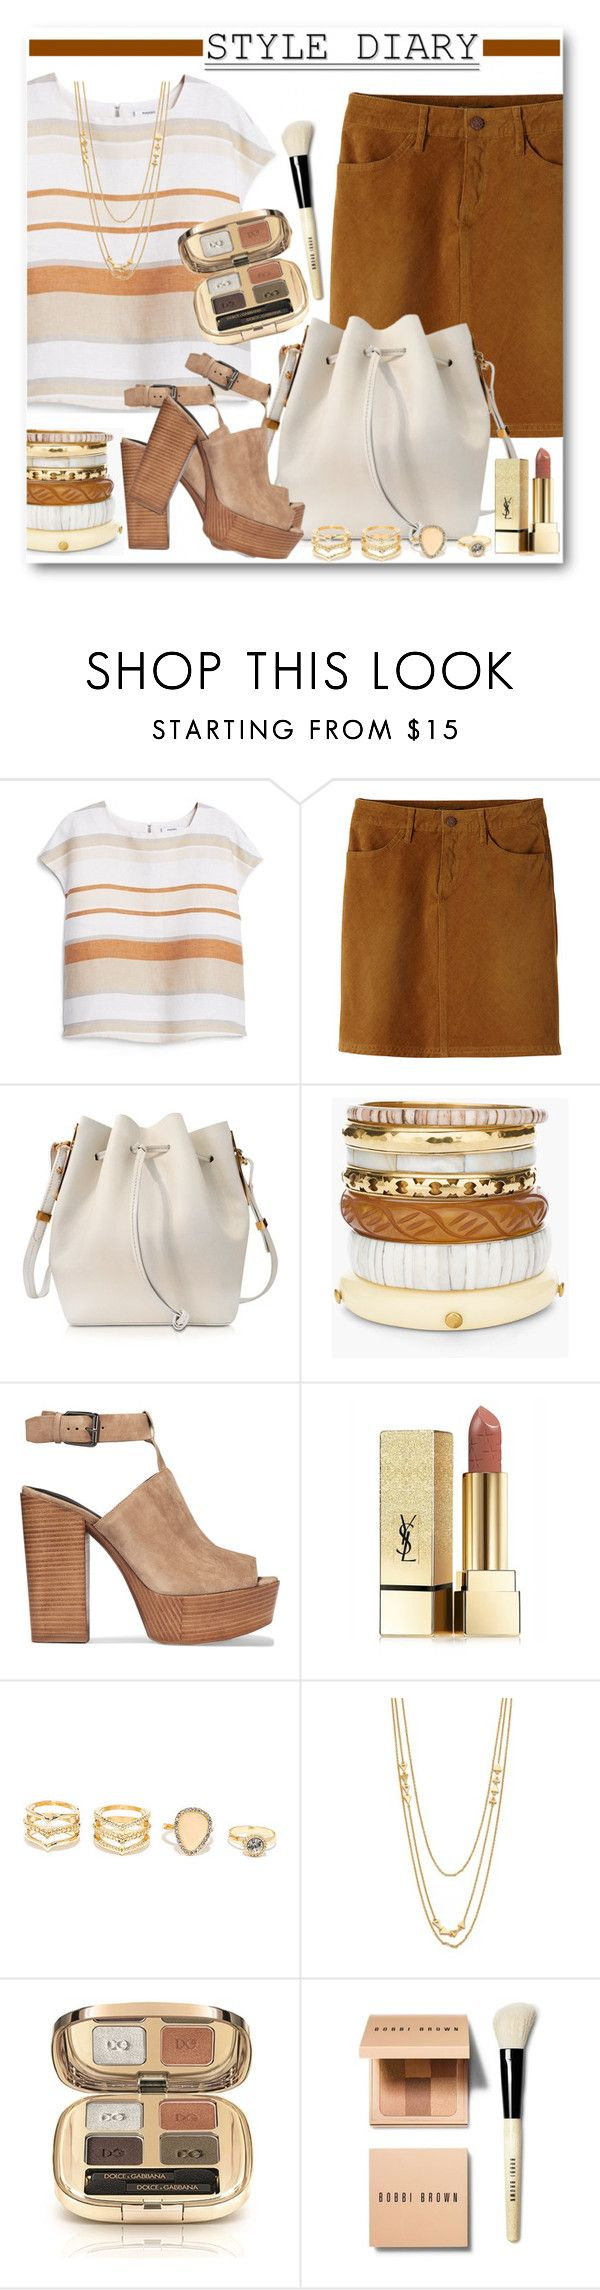 """""""Corduroy Skirt and Striped Linen Top"""" by brendariley-1 ❤ liked on Polyvore featuring MANGO, prAna, Sophie Hulme, Chico's, Rebecca Minkoff, Yves Saint Laurent, LULUS, Gorjana, Dolce&Gabbana and Bobbi Brown Cosmetics"""